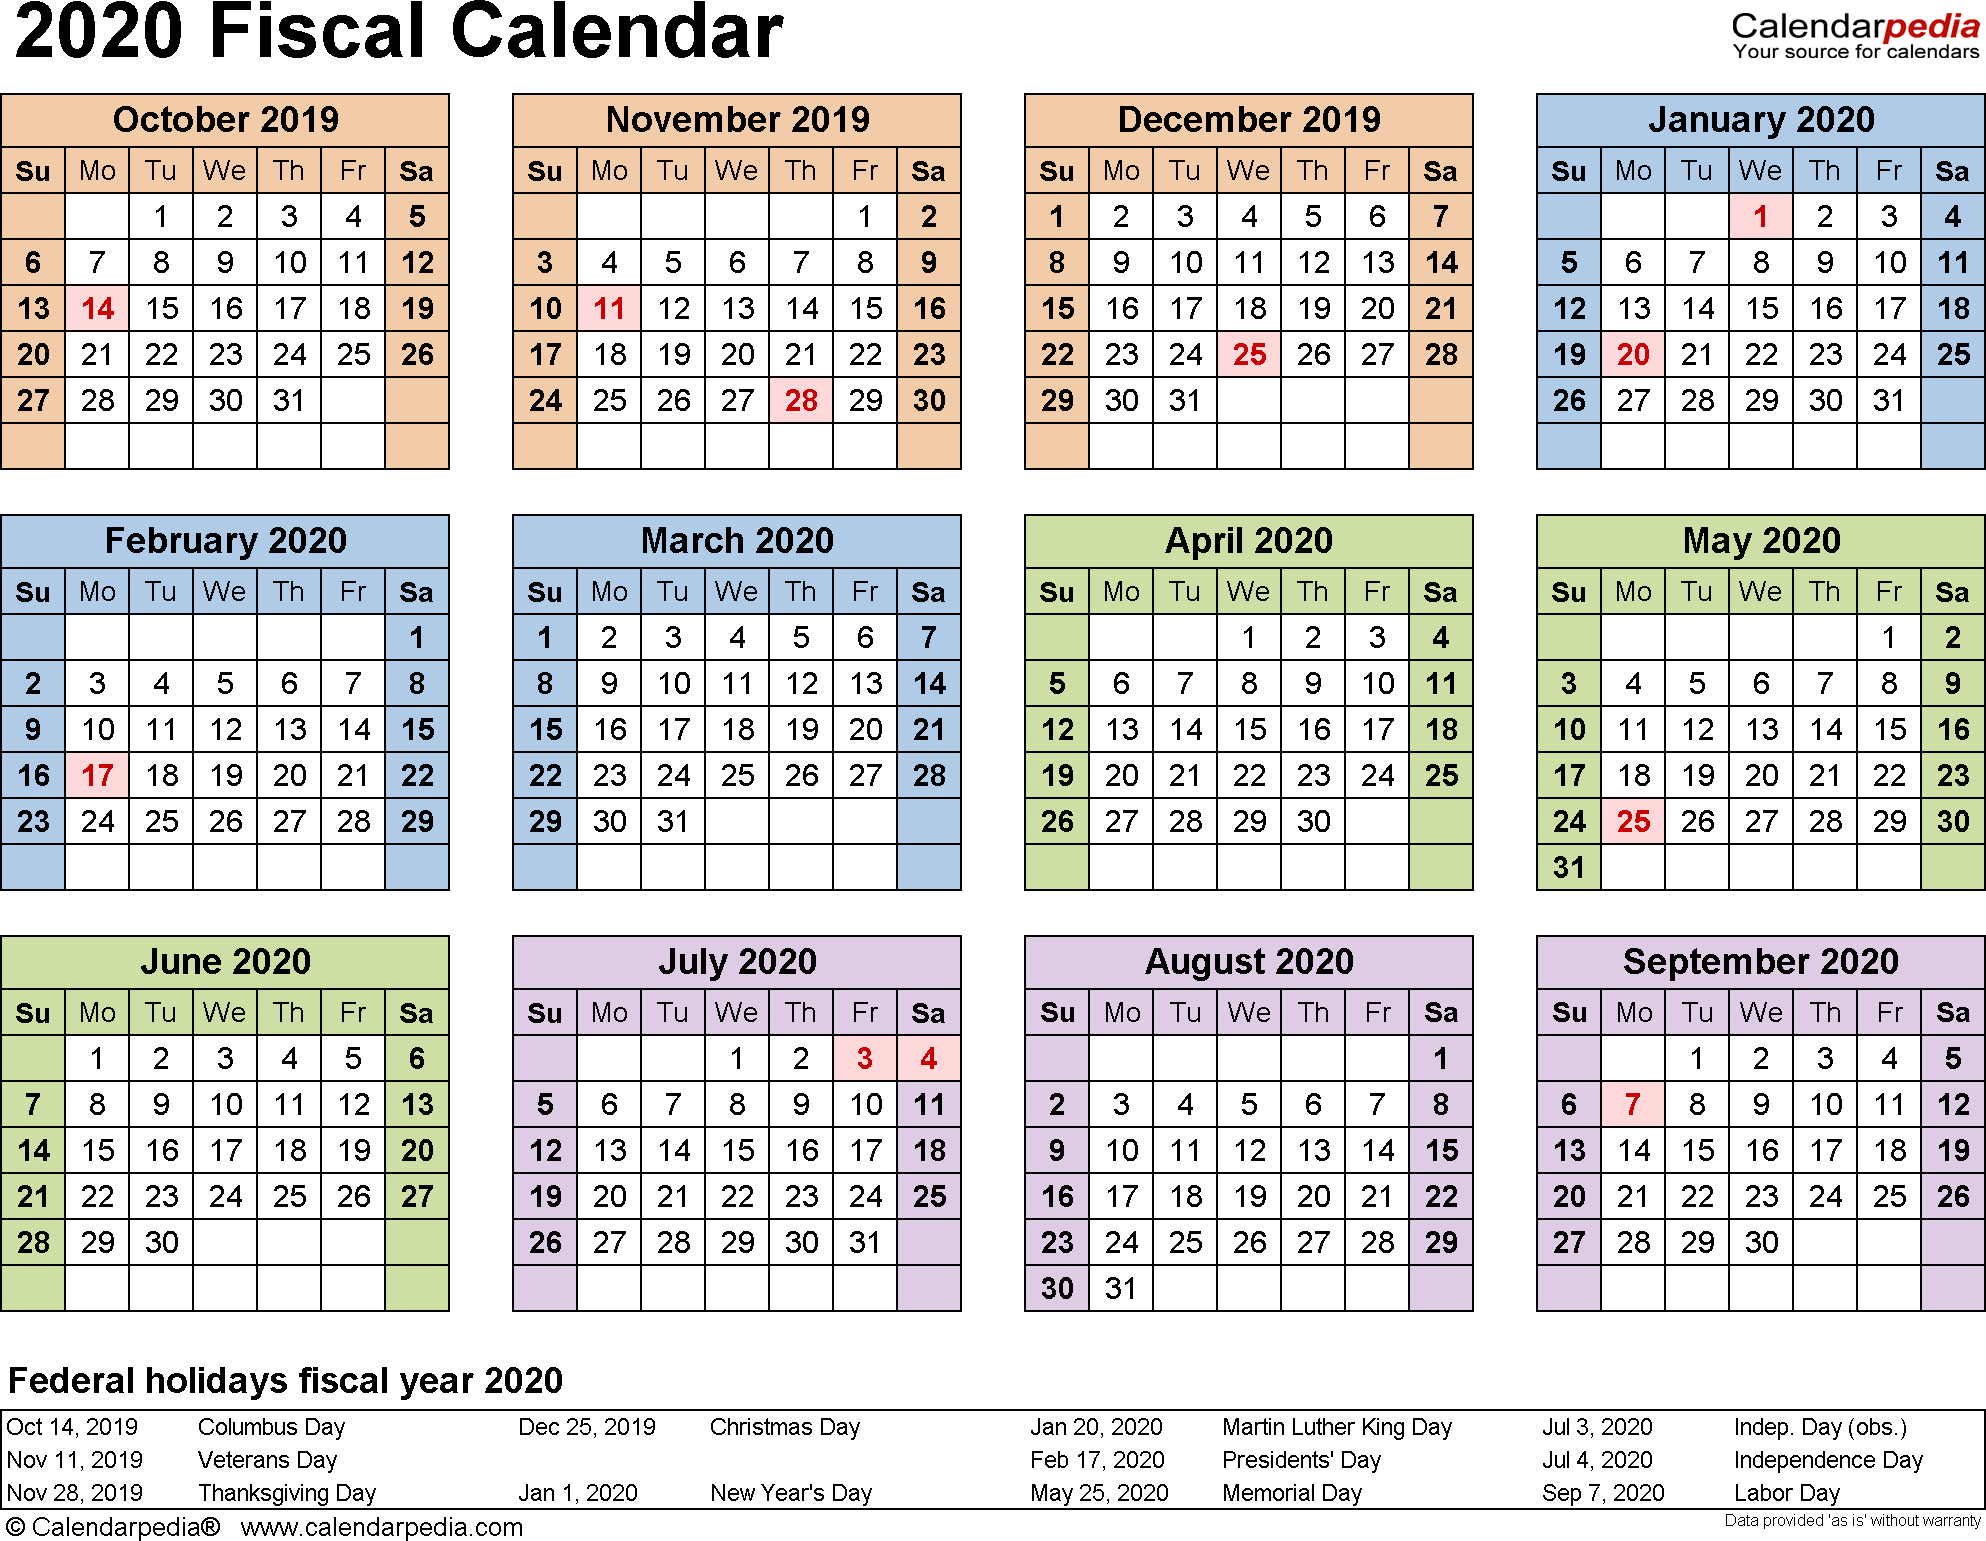 Fiscal Calendars 2020 As Free Printable Excel Templates inside Fiscal Calendar 2019/2020 Free Printable